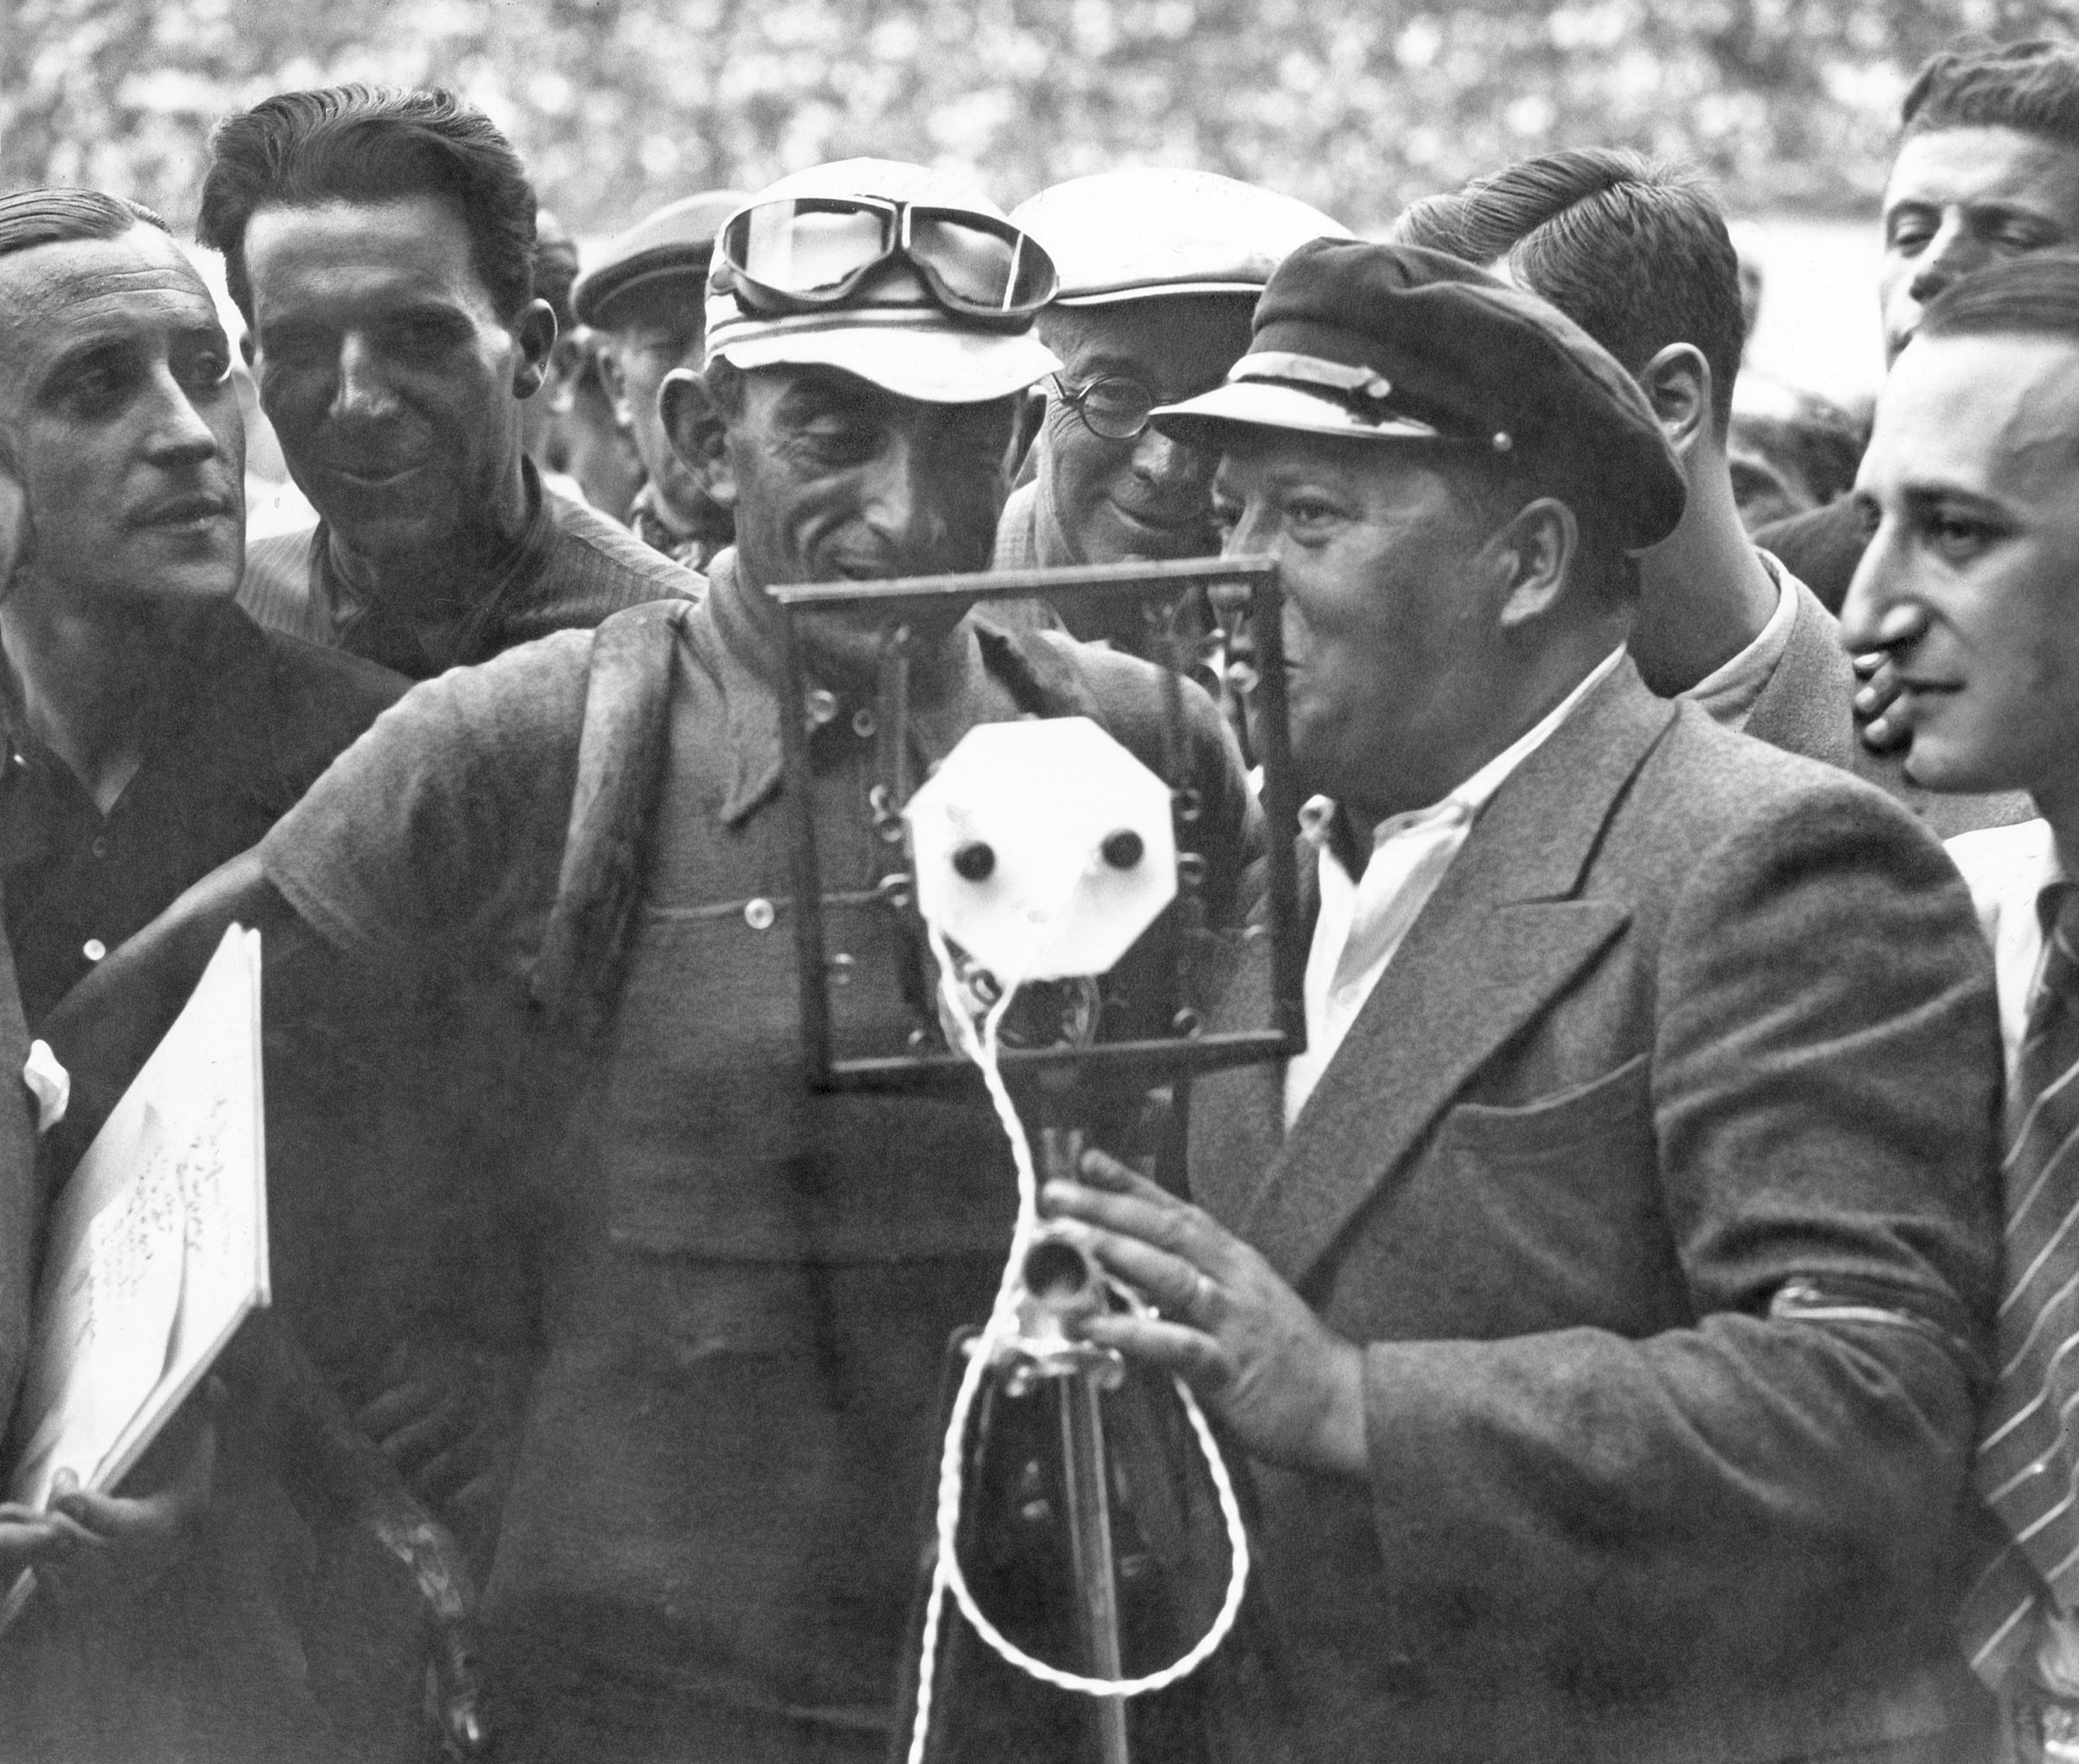 French racing cyclist Antonin Magne (left), winner of the 28th Tour de France is interviewed at the end of the 23rd stage Caen-Paris, on July 29, 1933.